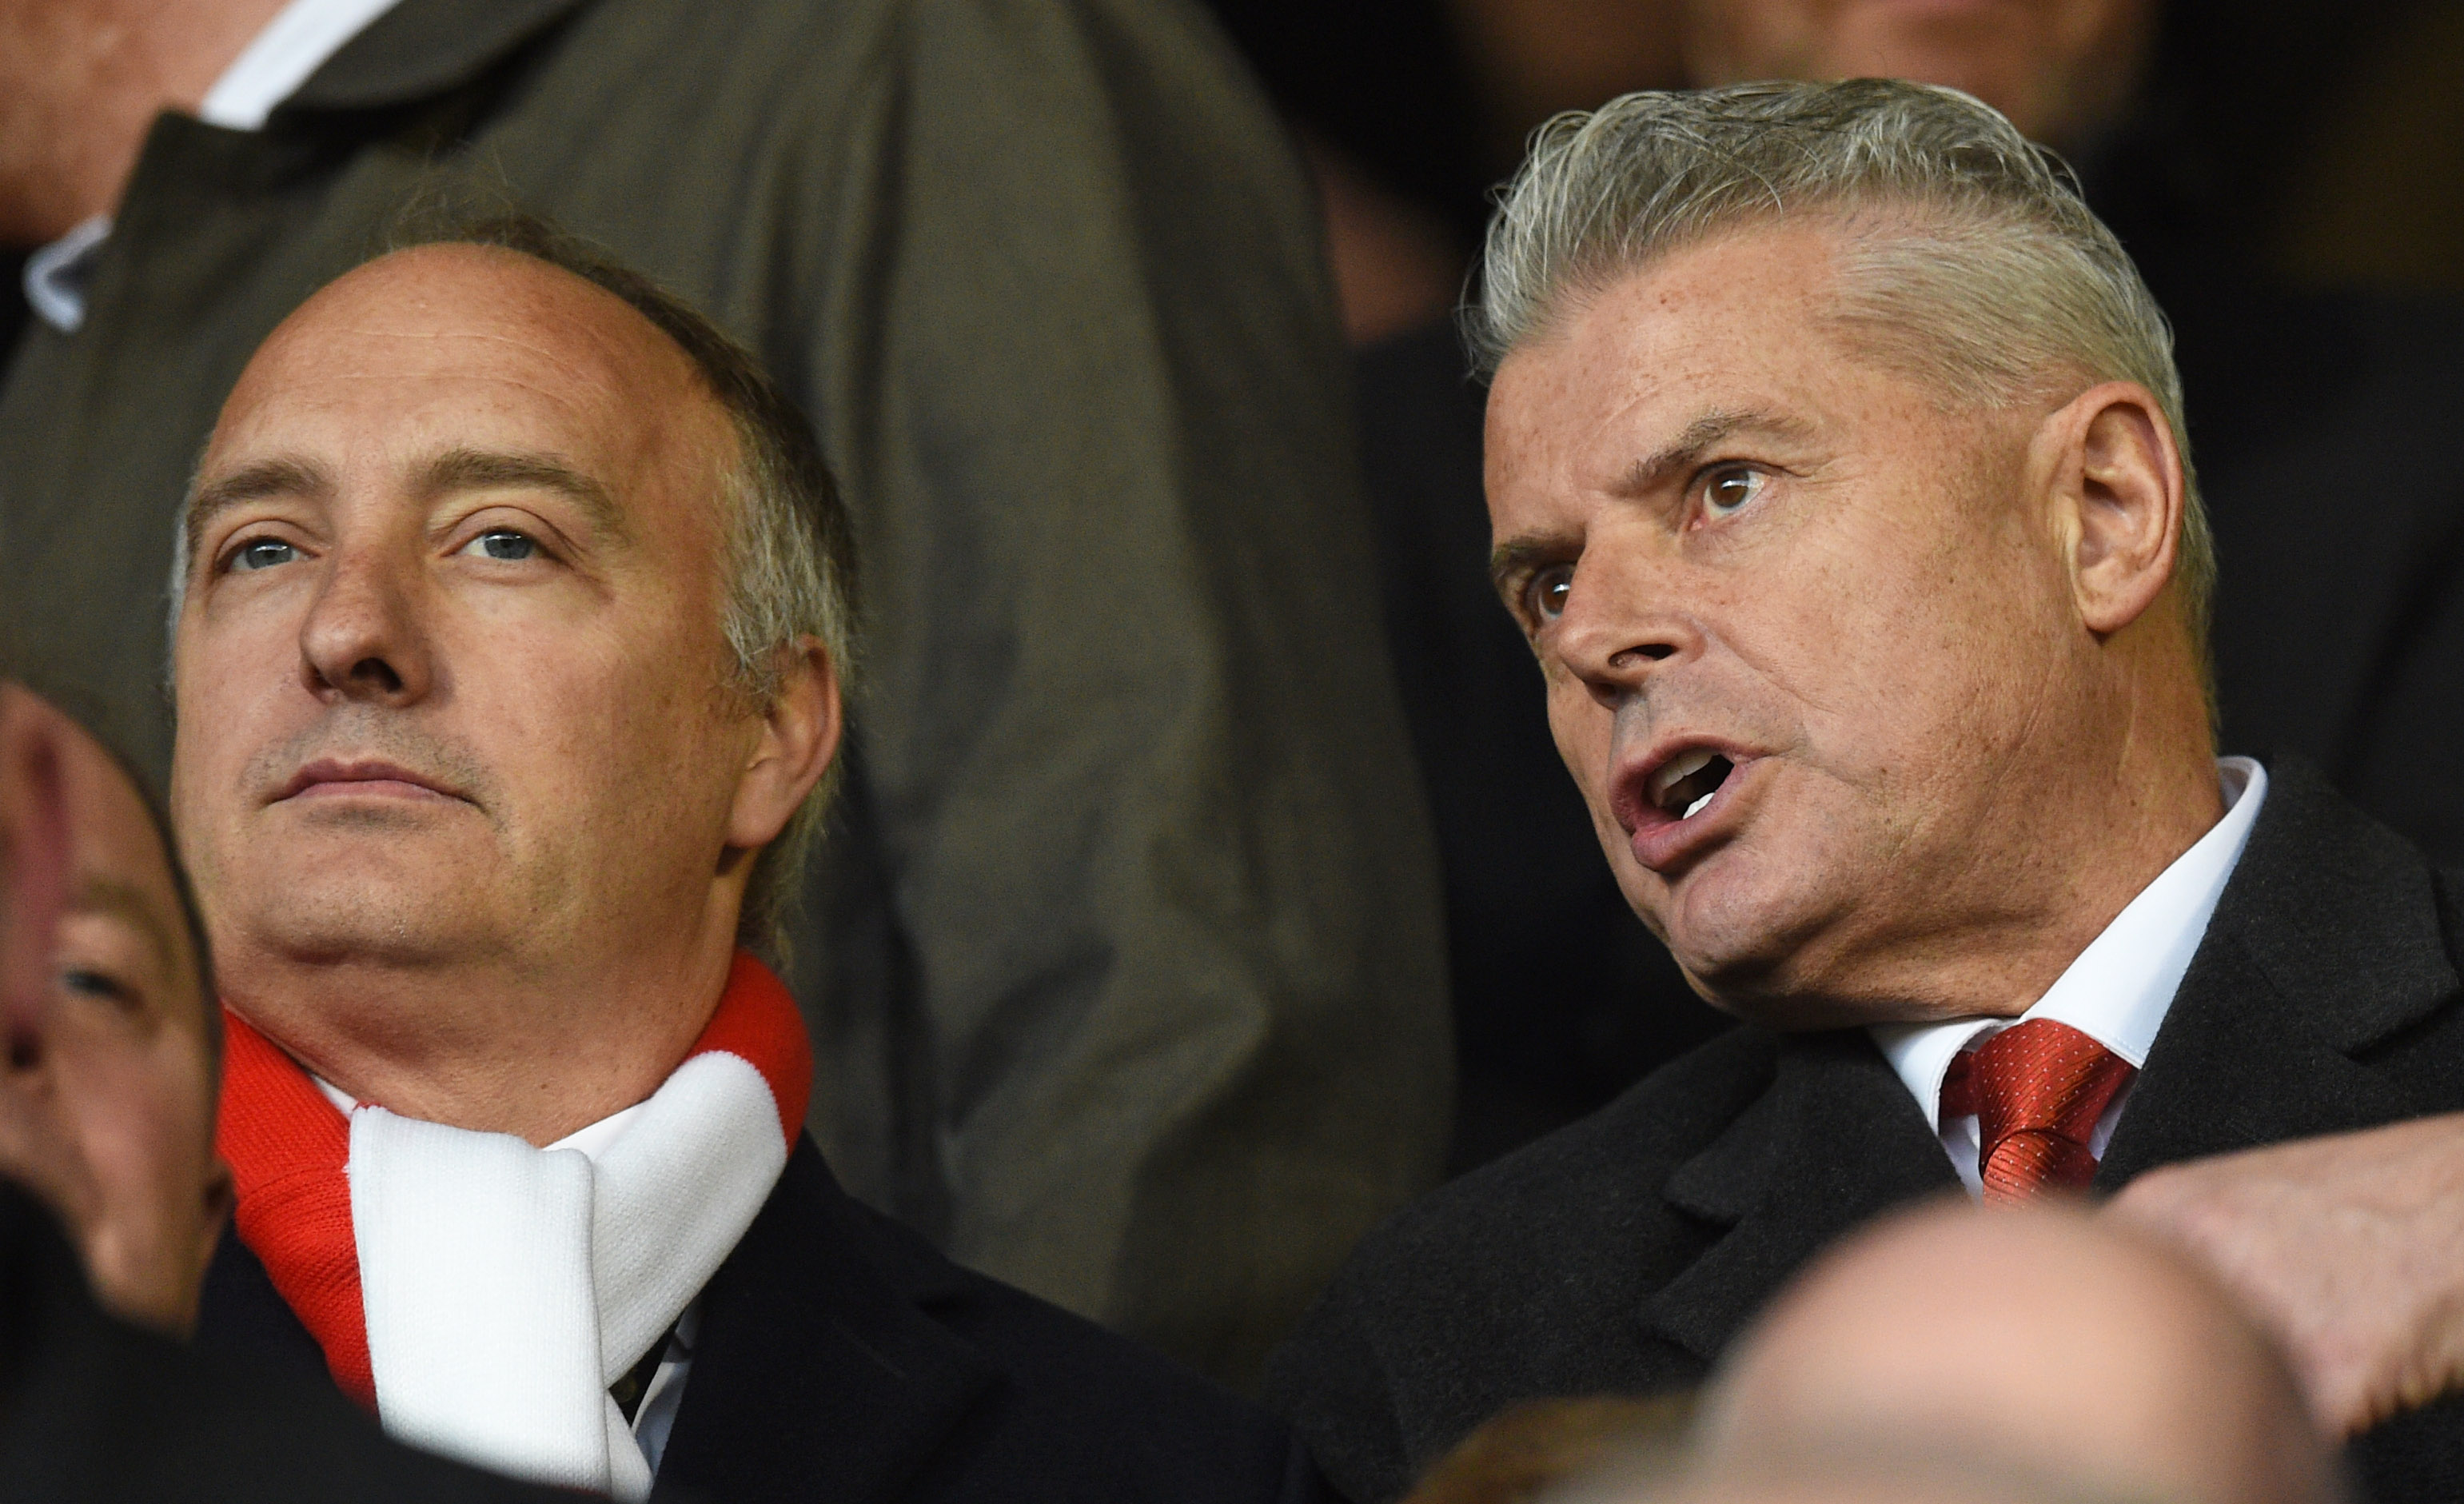 Aberdeen chairman Dave Cormack, right, and Atlanta United president Darren Eales watch on.